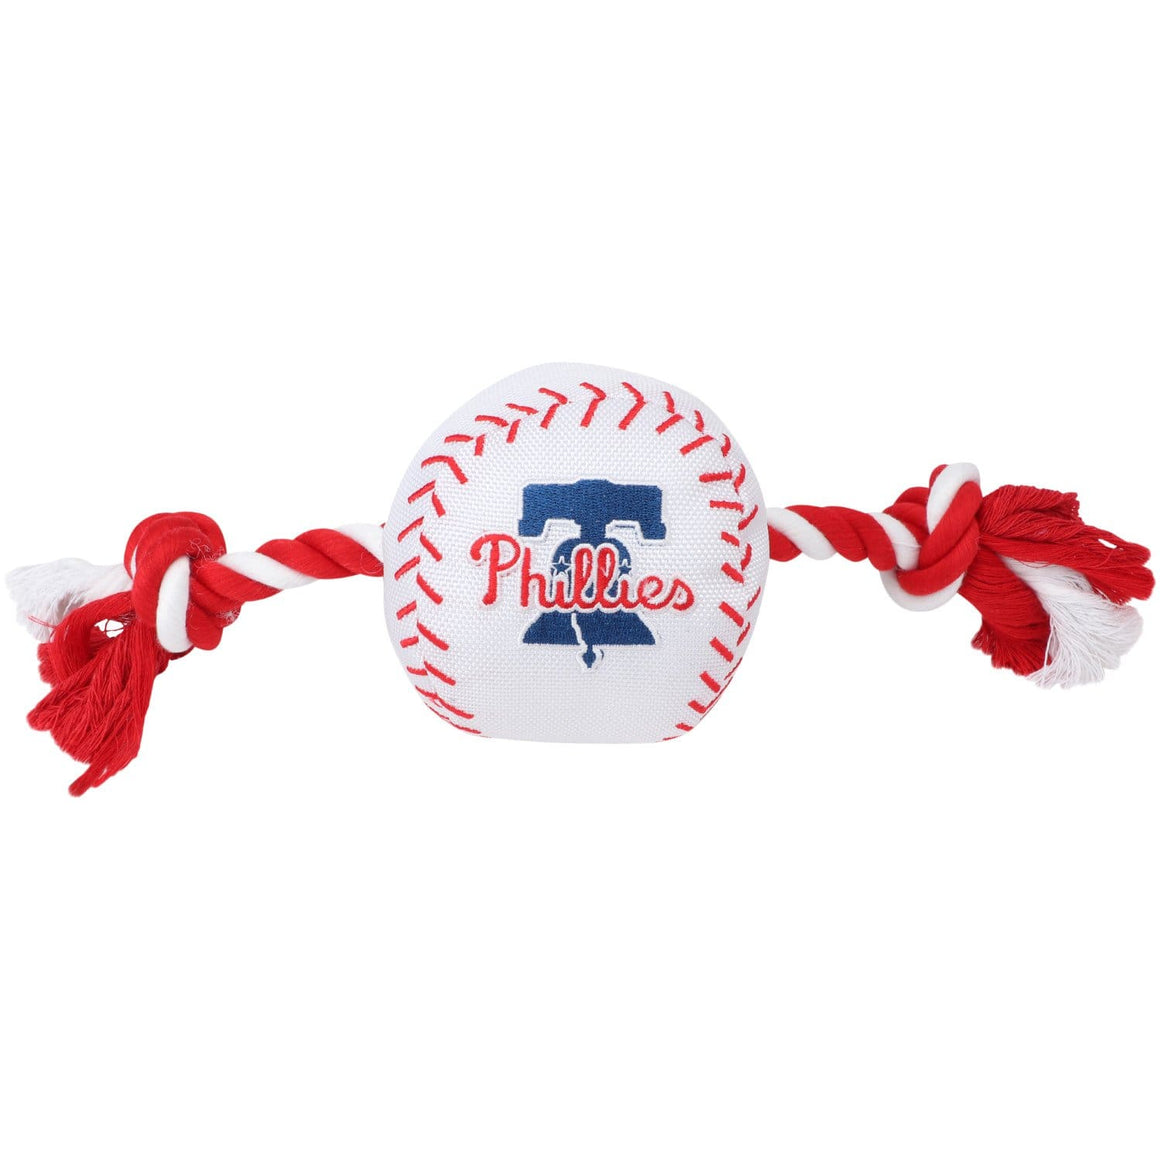 Pets First Dog-products MLB Philadelphia Phillies Nylon Baseball Rope Tug Toy